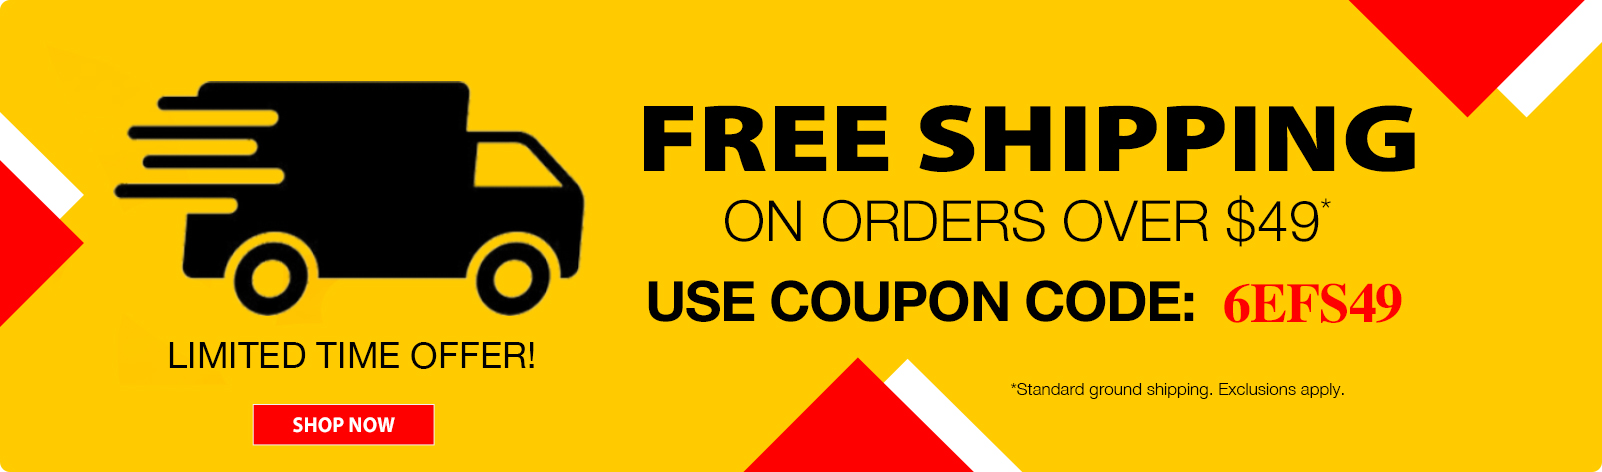 Free Shipping on Order Over $49!